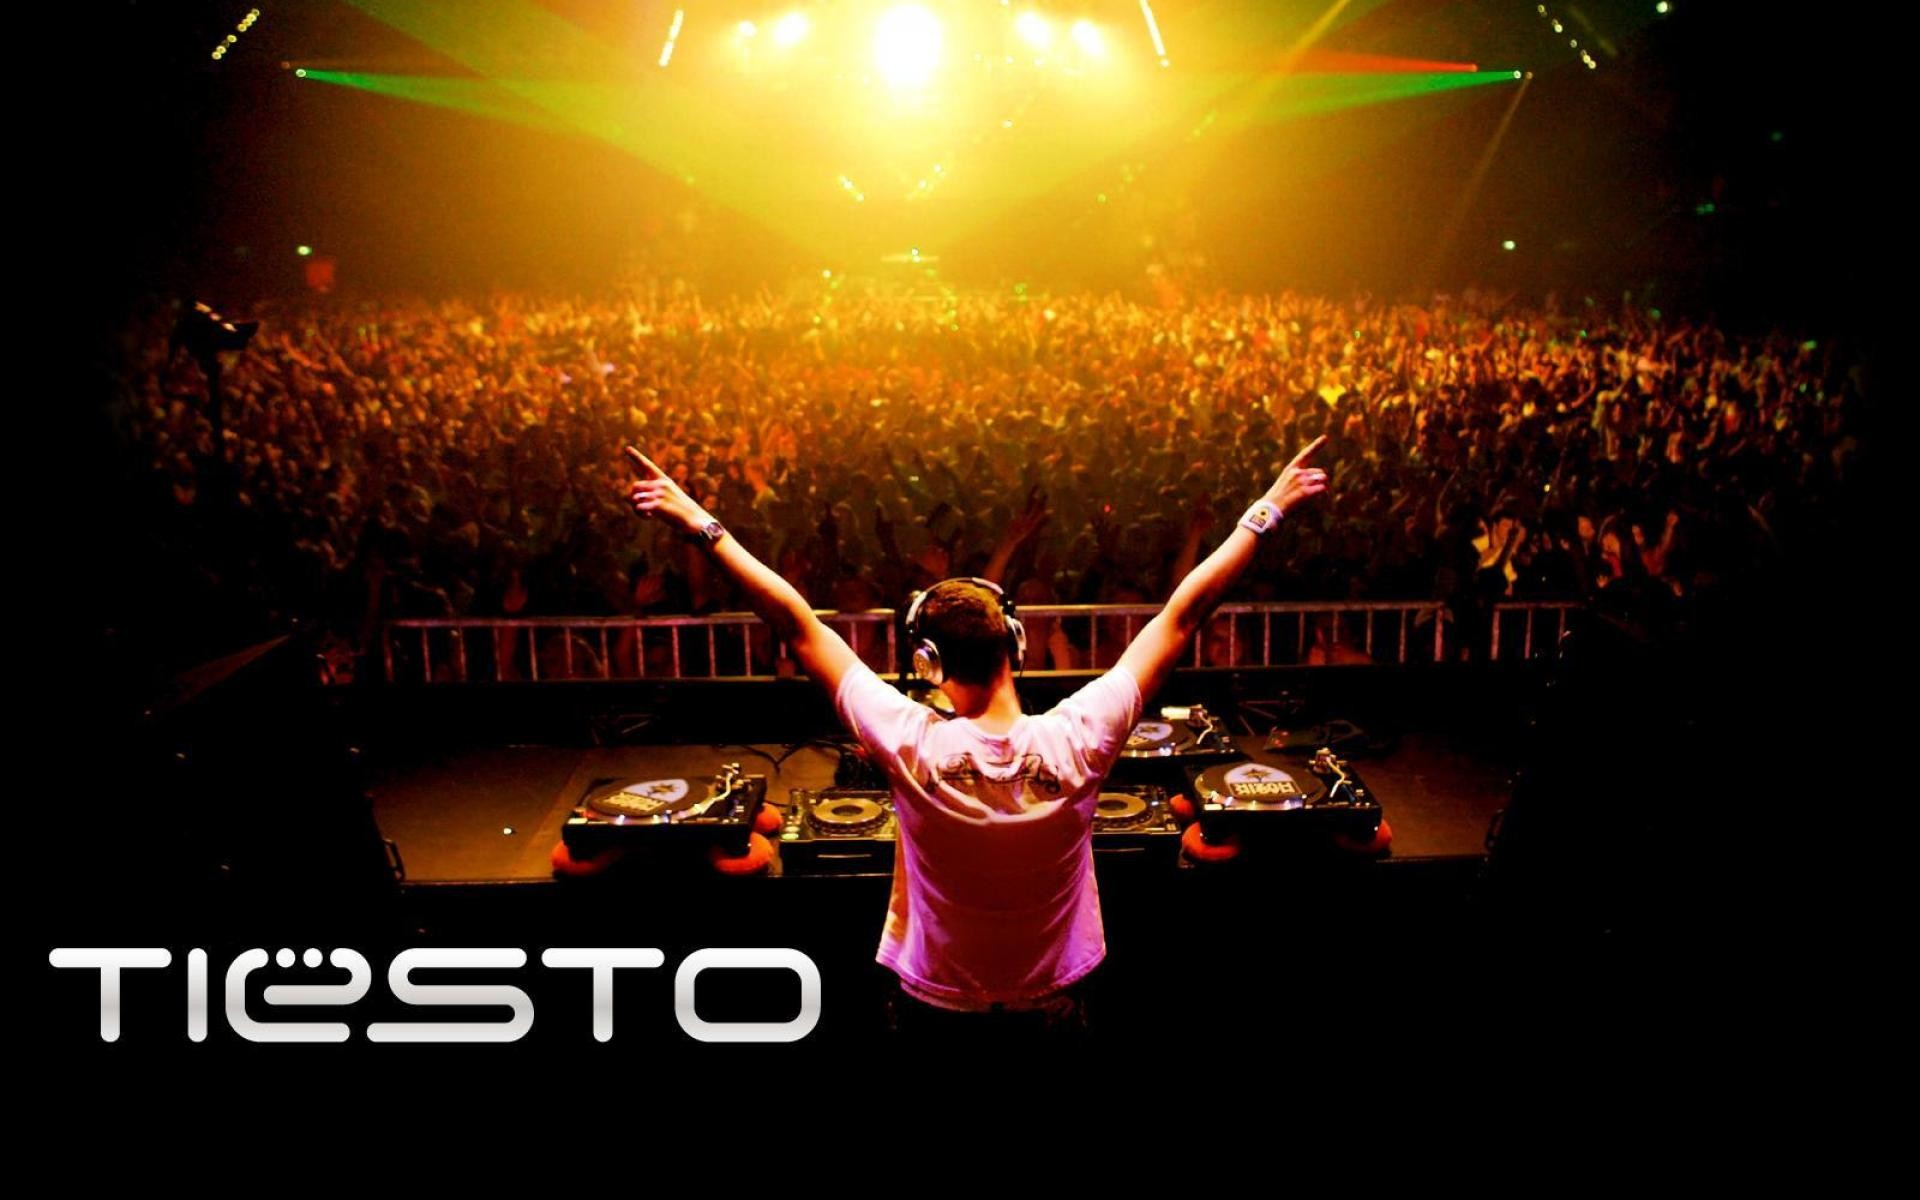 1920x1200 Related wallpapers from Tiesto Wasted Album Cover